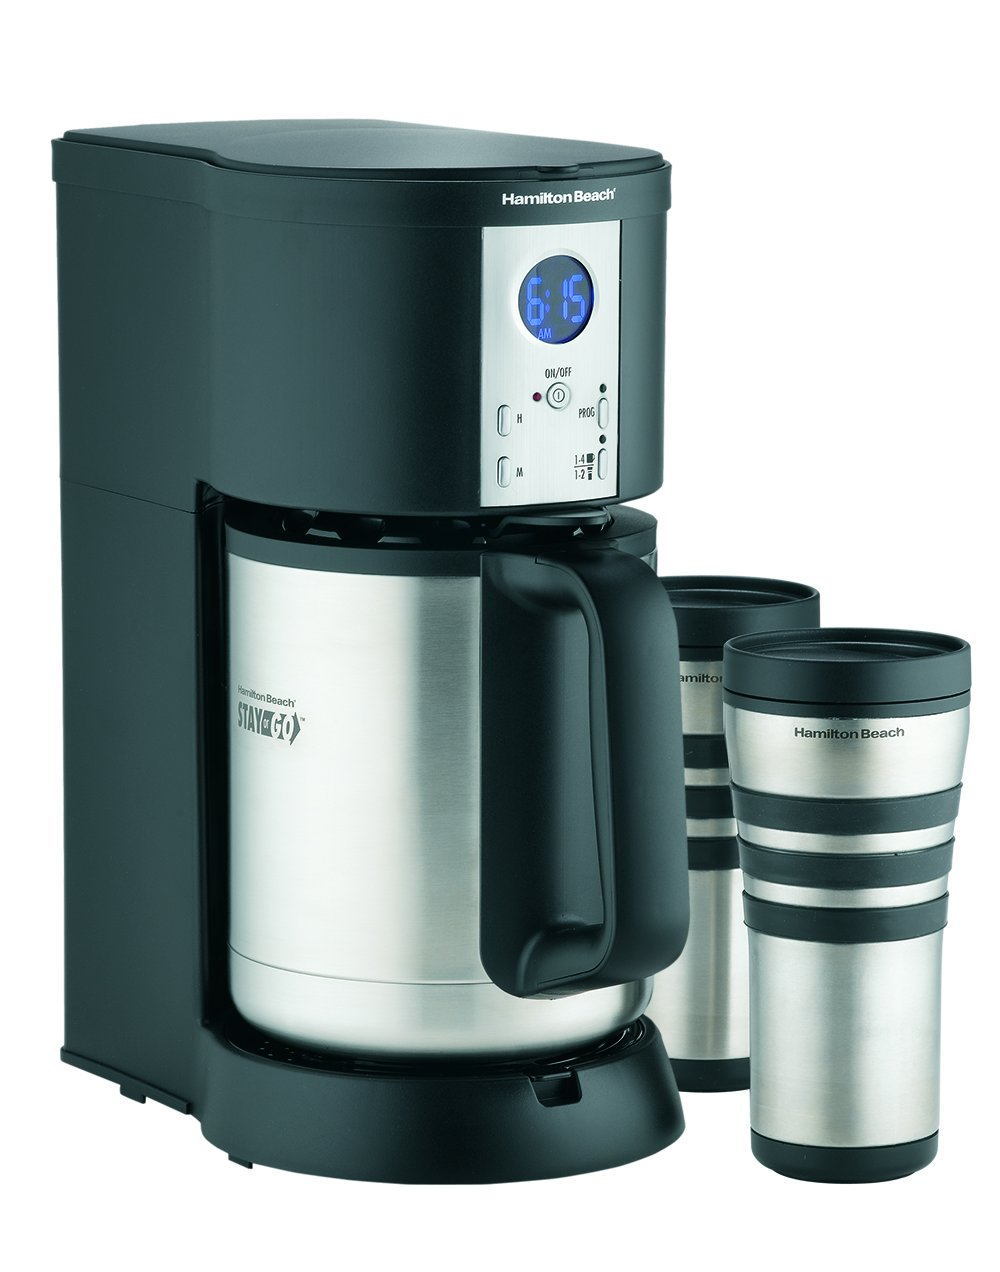 Hamilton Beach Coffee Maker 45237R: 10 Cup Appliance For All Coffee Lovers